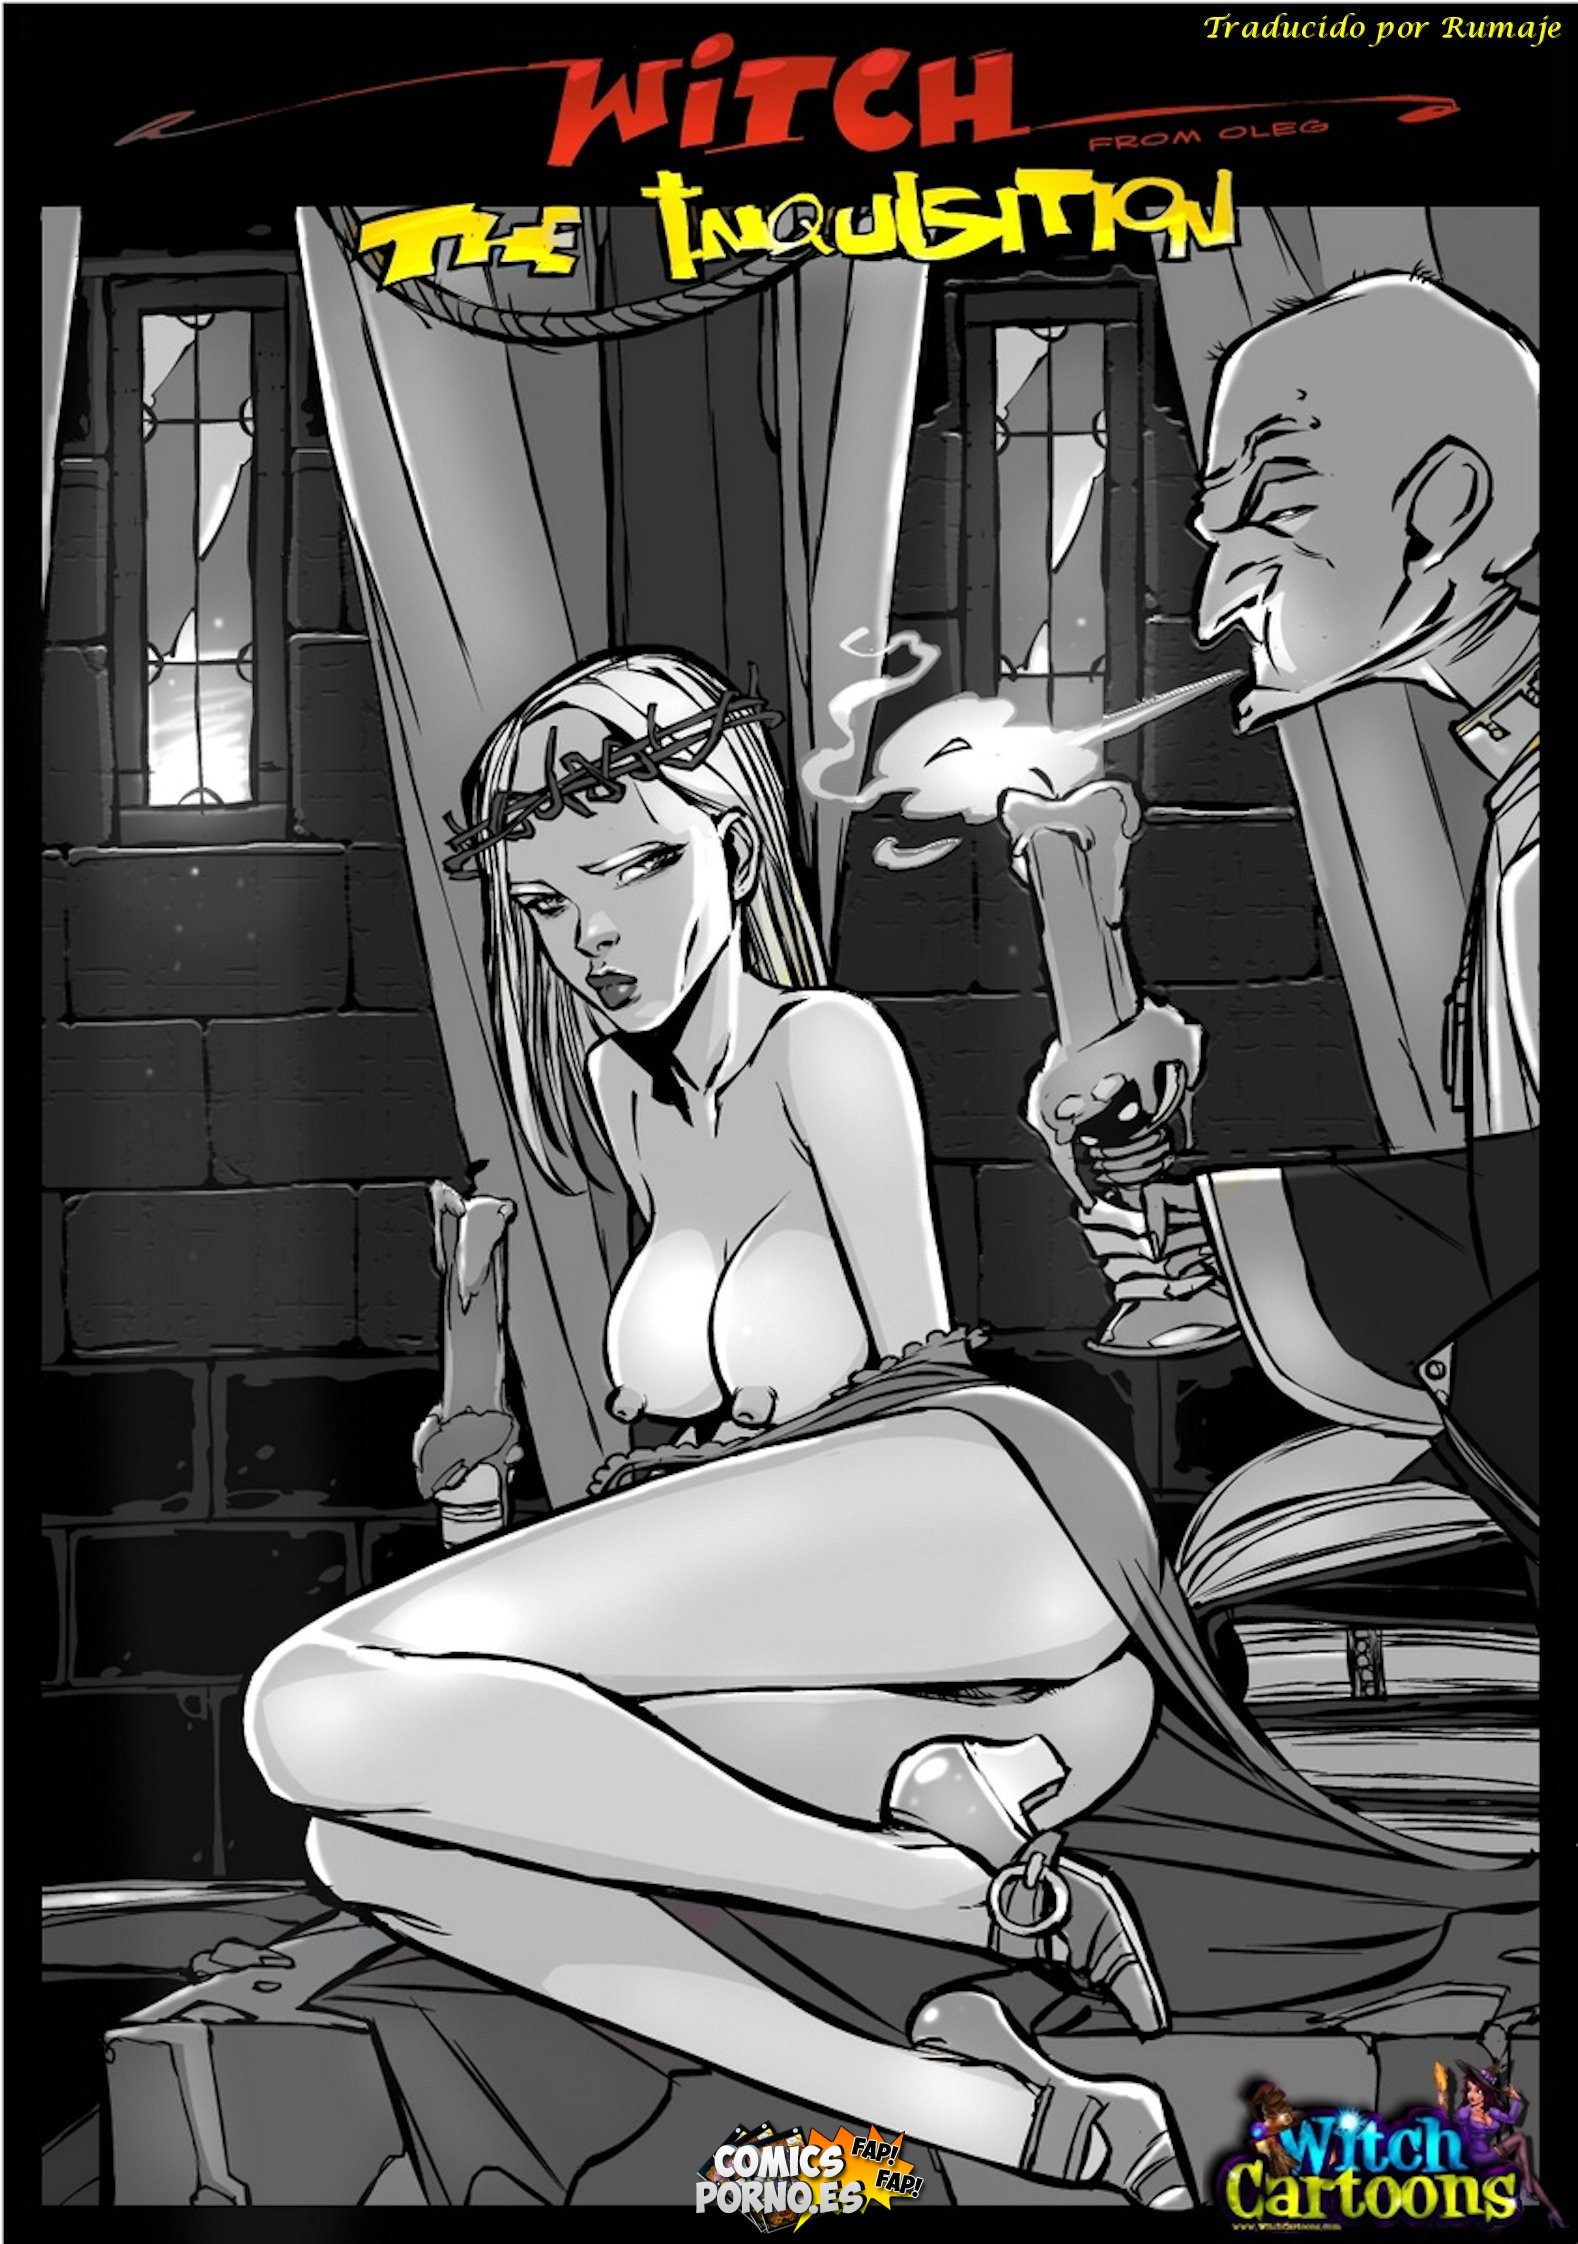 Sexy cartoons priest tits sex image